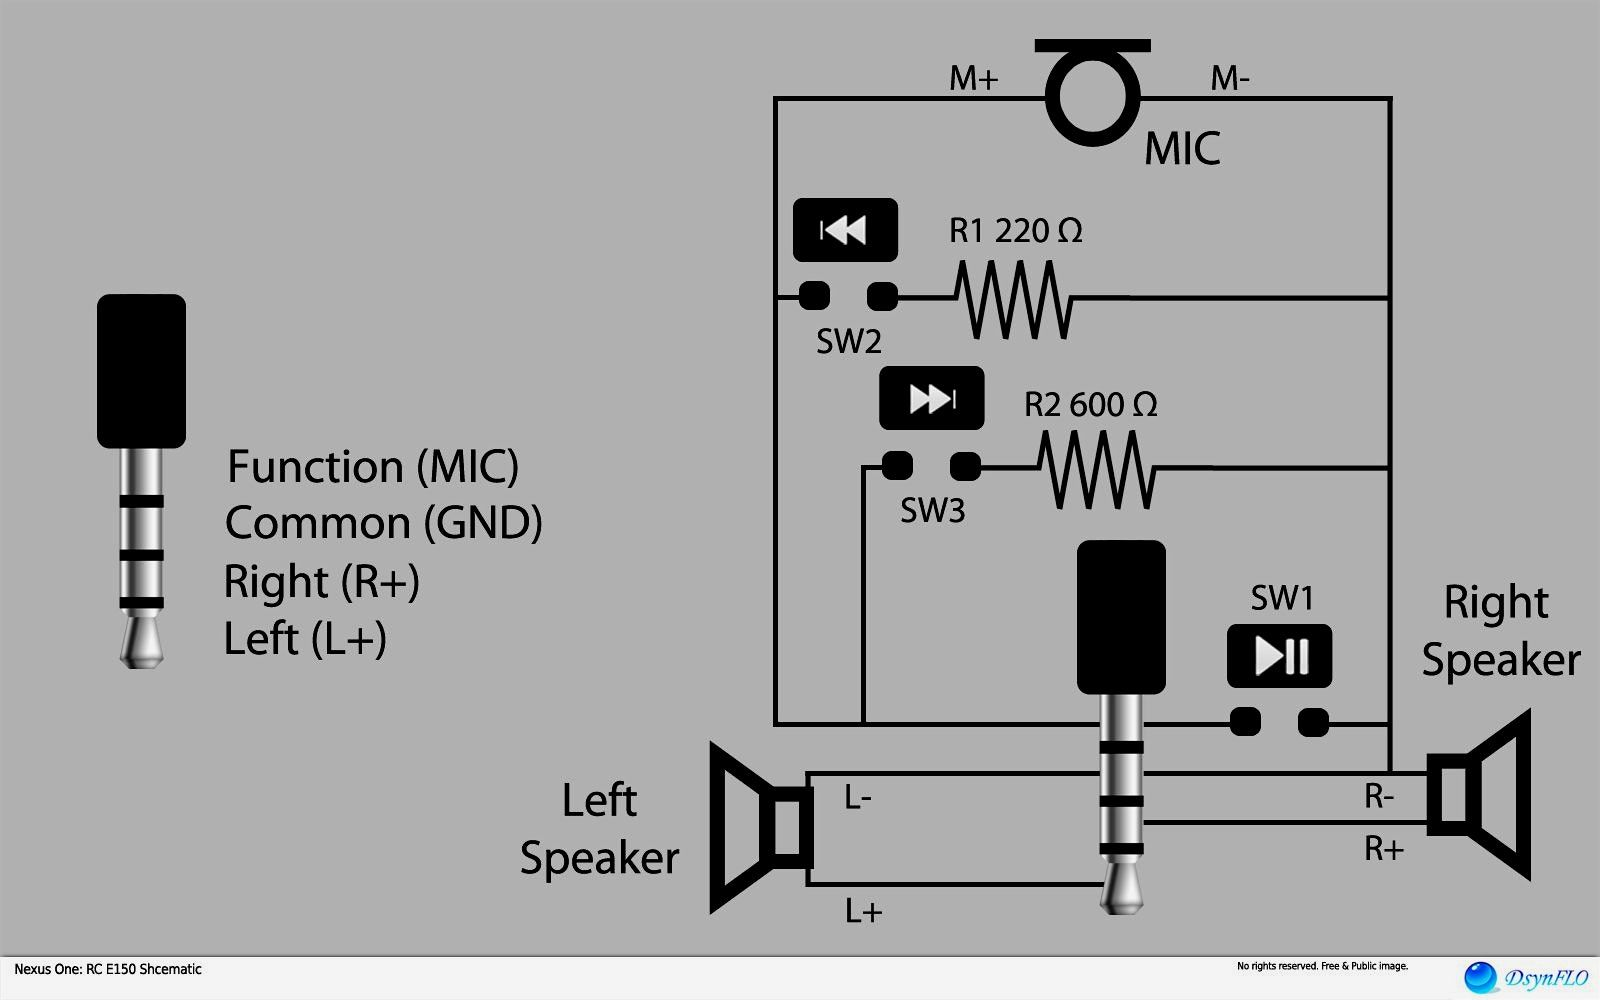 Headphone Stereo Wiring Diagram - wiring diagram on the net on